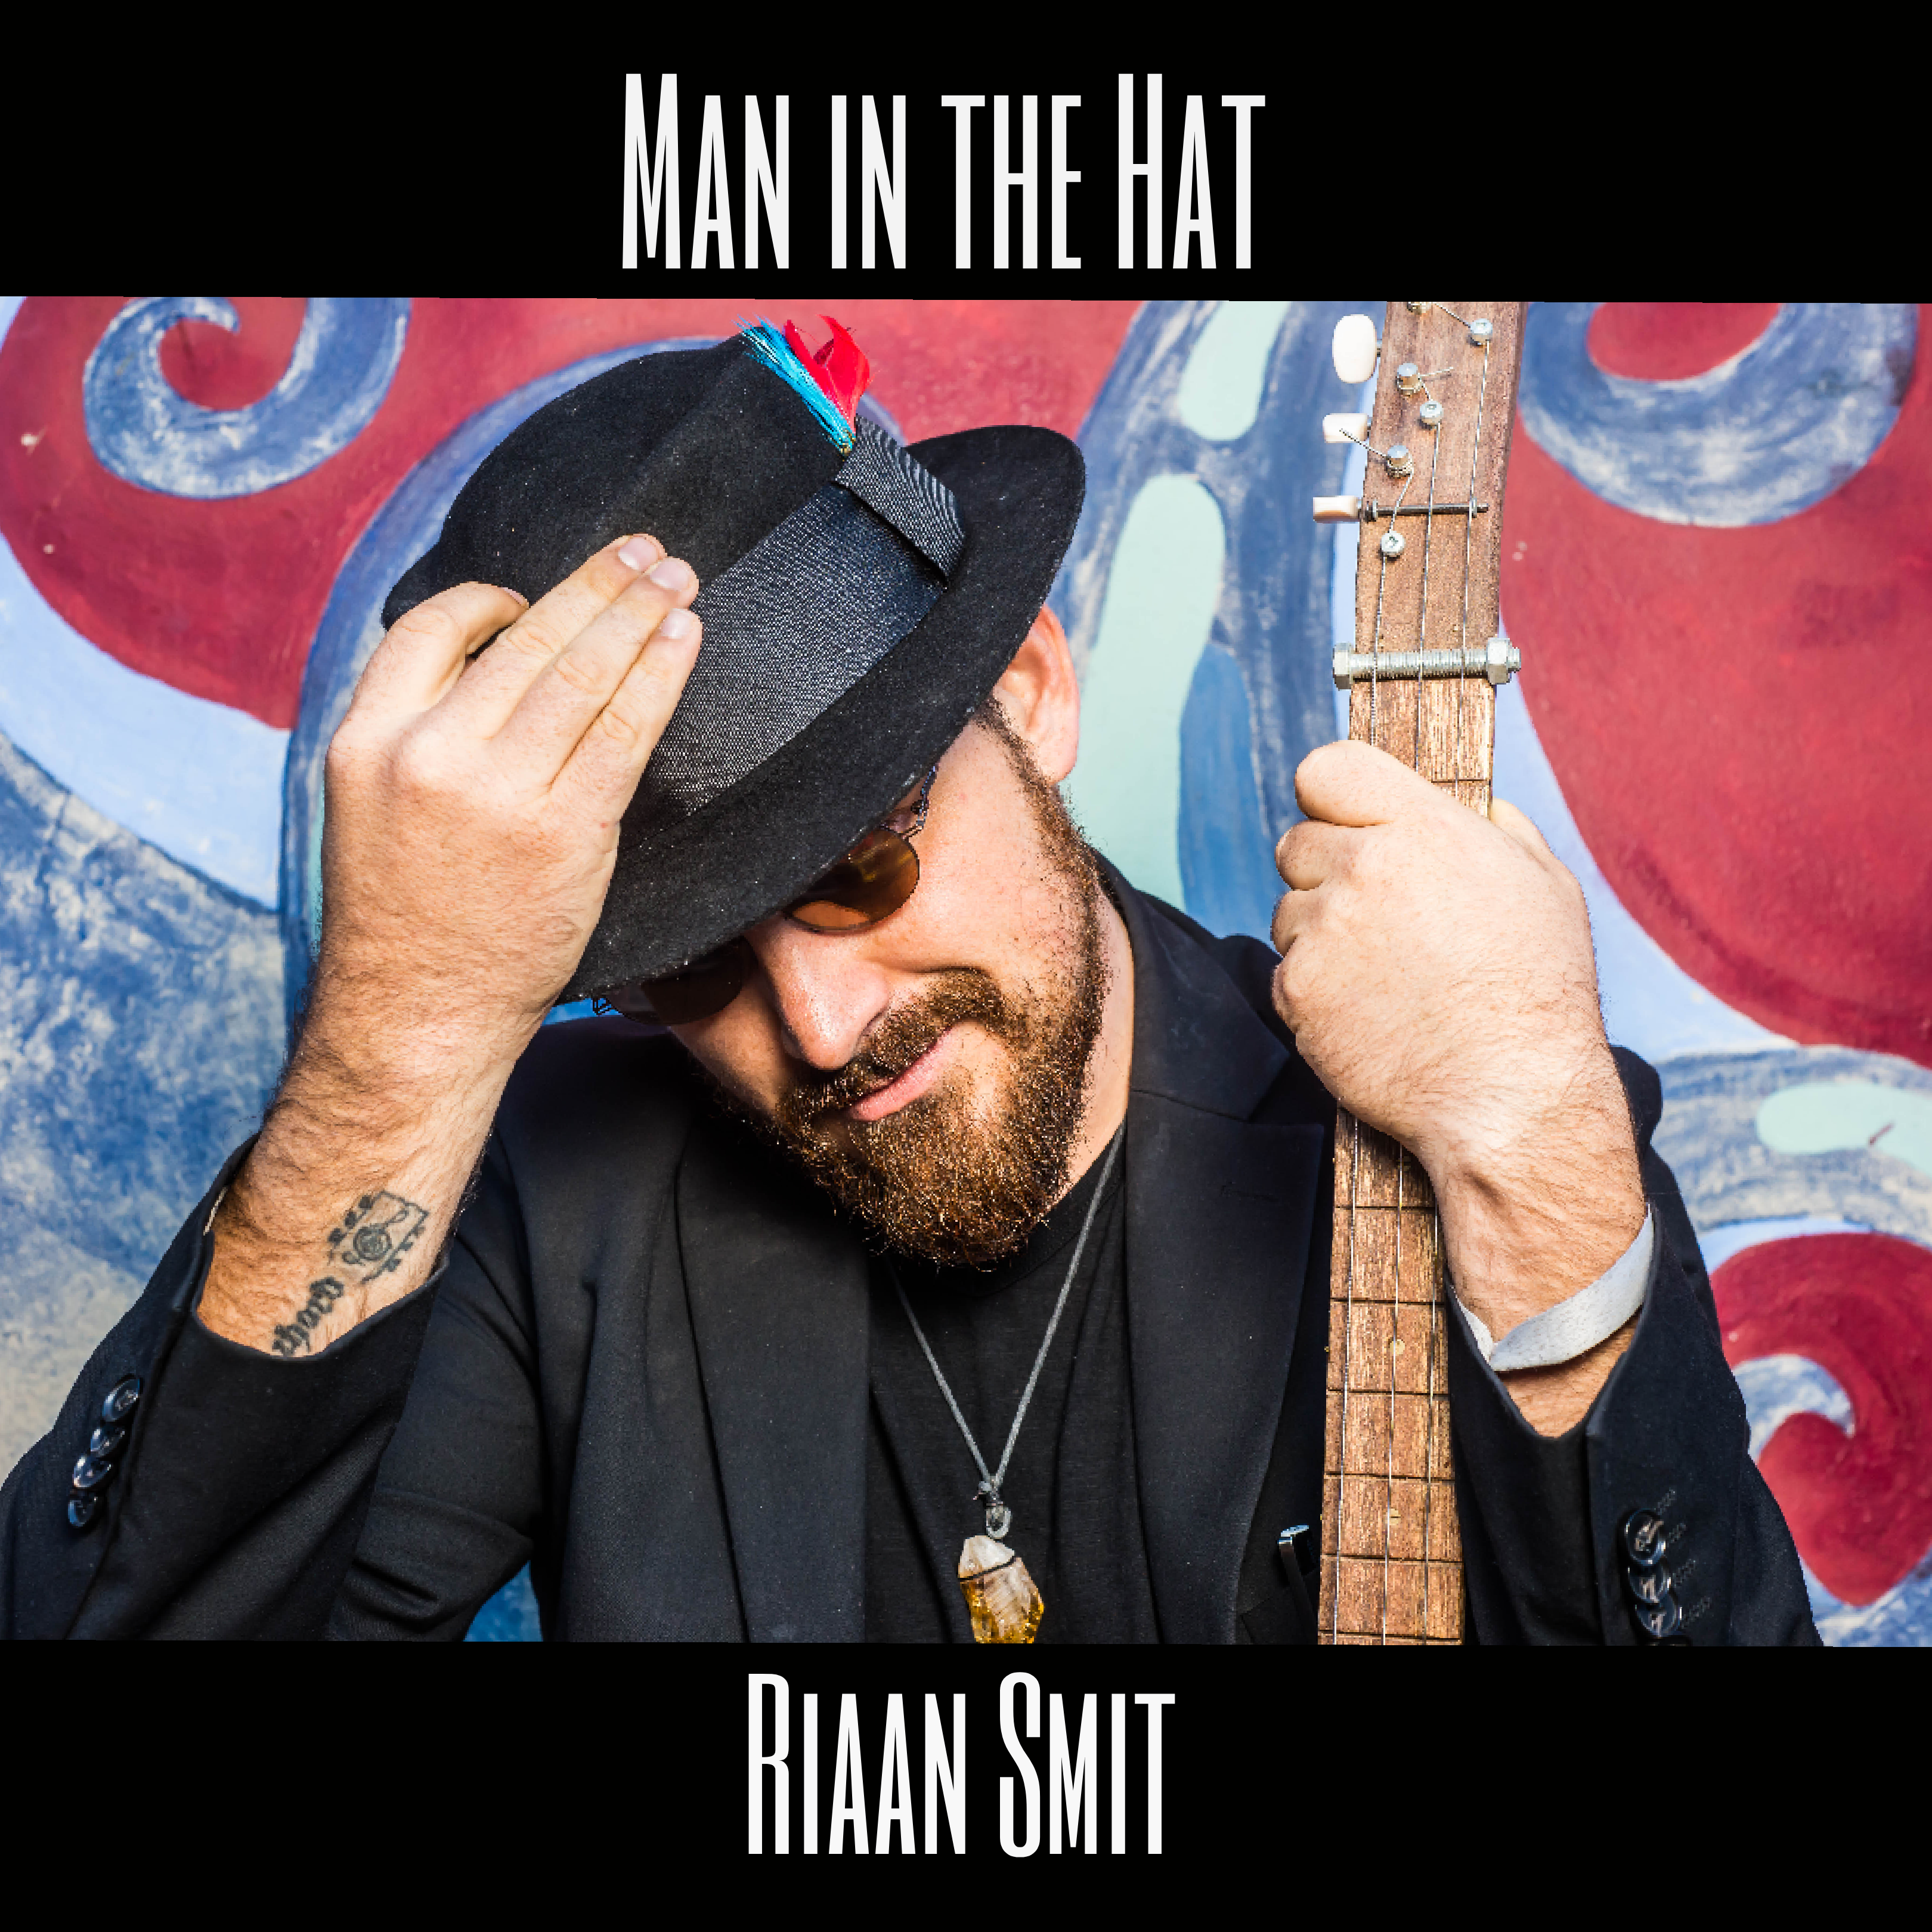 Riaan Smit - Man in the Hat Album cover